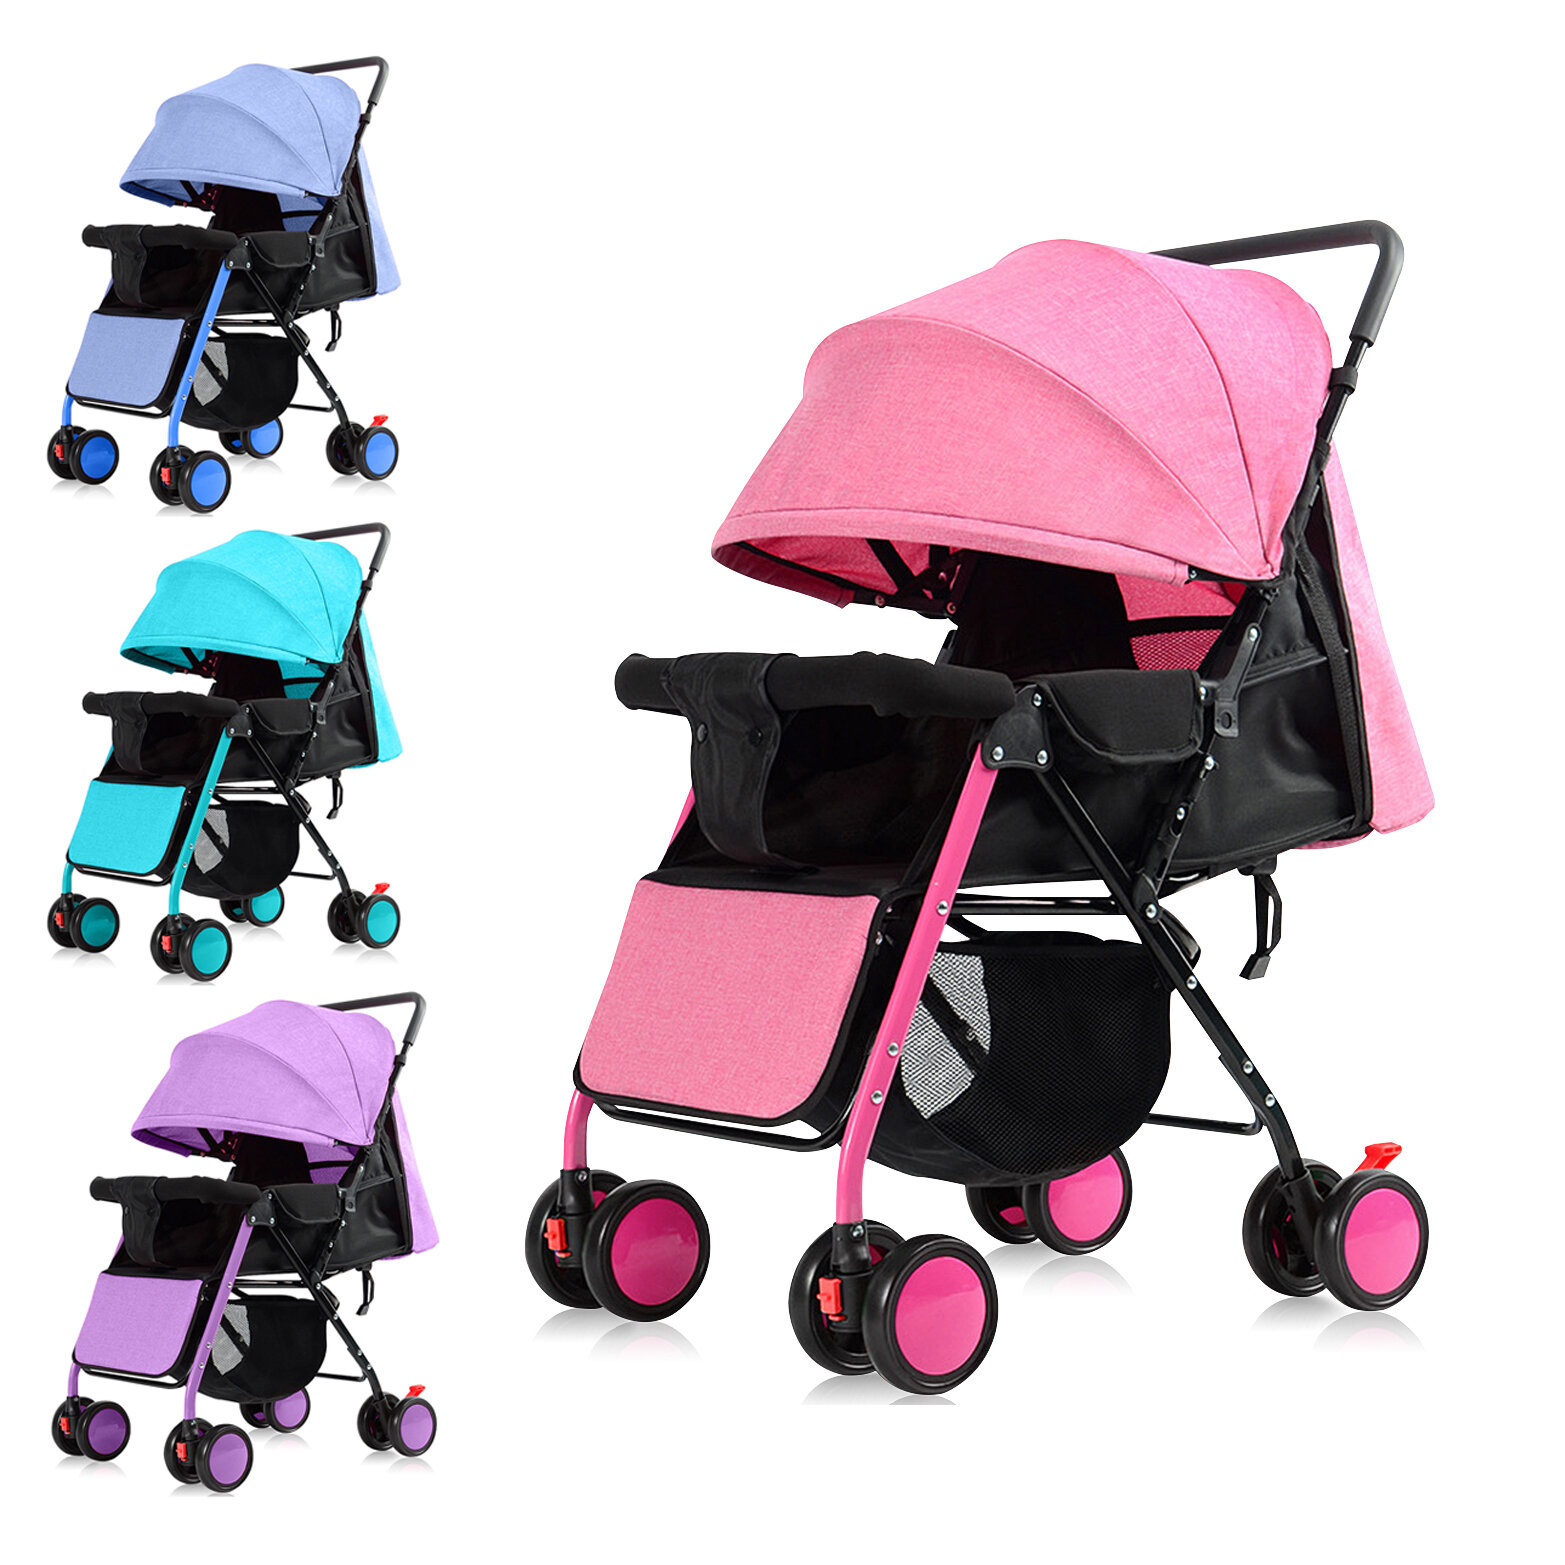 Lightweight Shake-proof Baby Stroller With Adjustable Pedal Folding Portable Baby Carriage Trolley For 0-3 Years Old